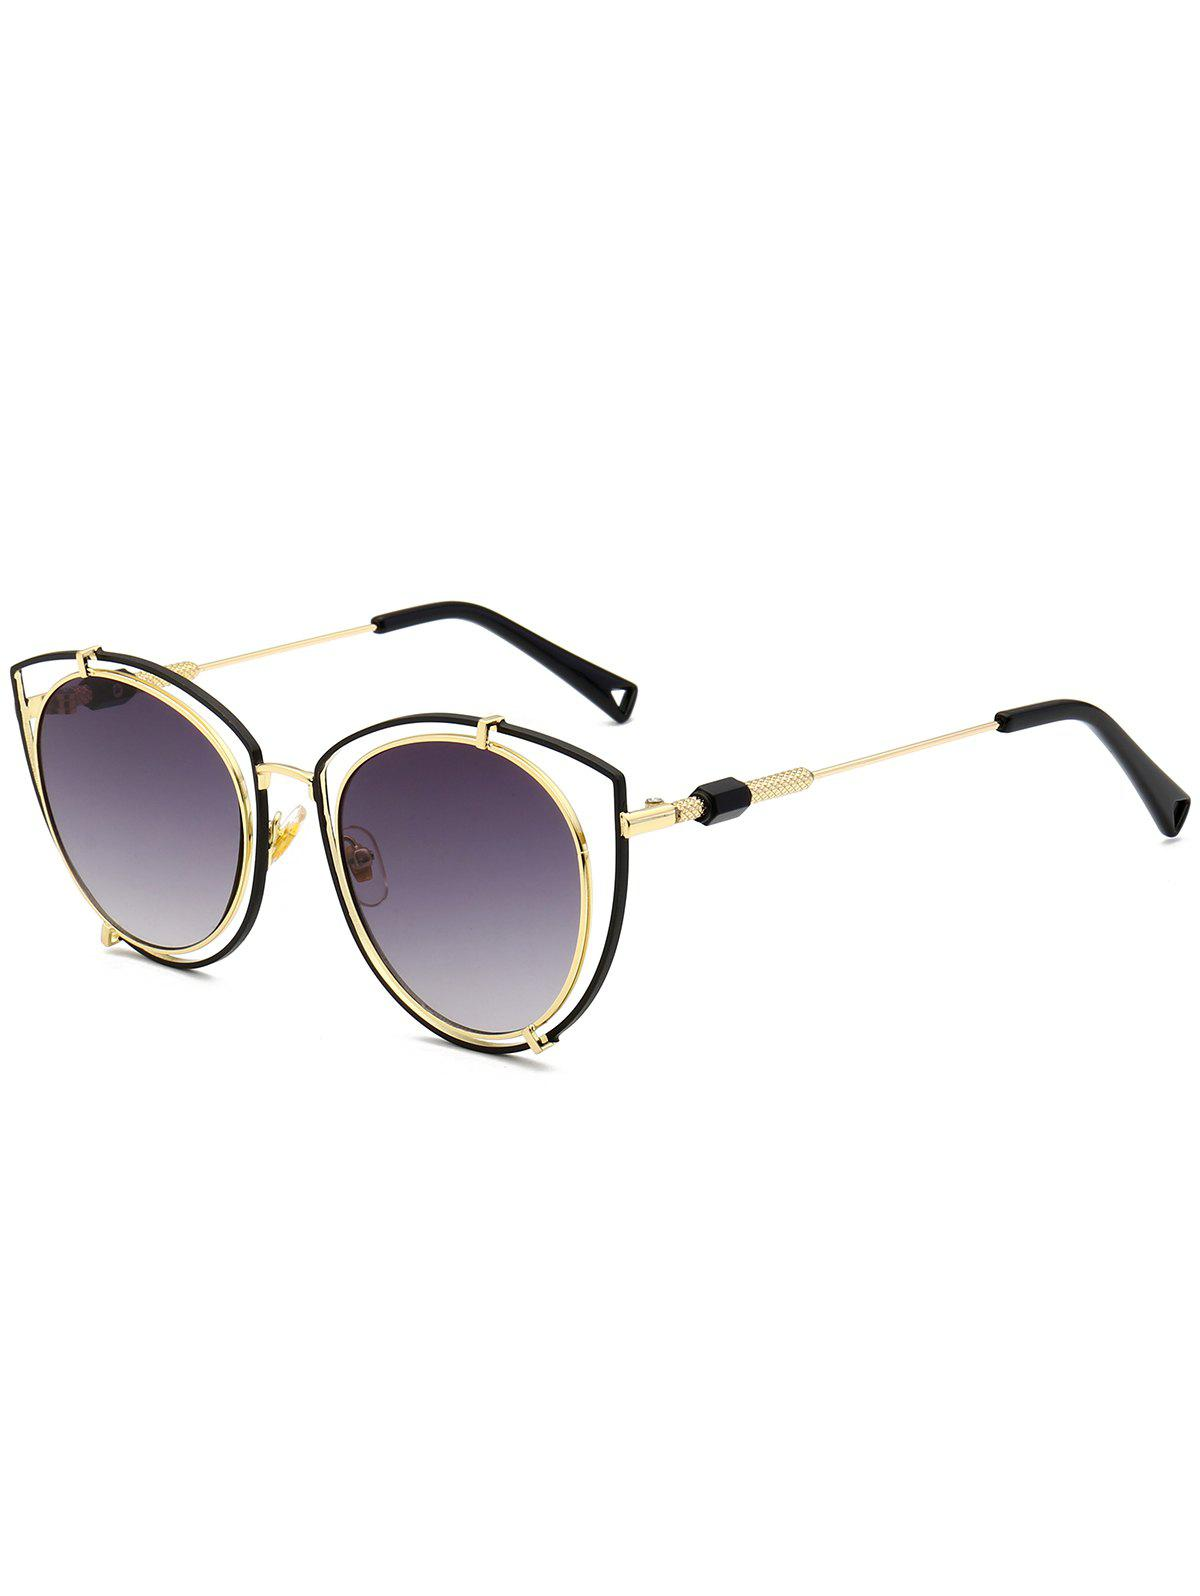 Hollow Out Double Frame Cat Eye Sunglasses clear frame cat eye glasses